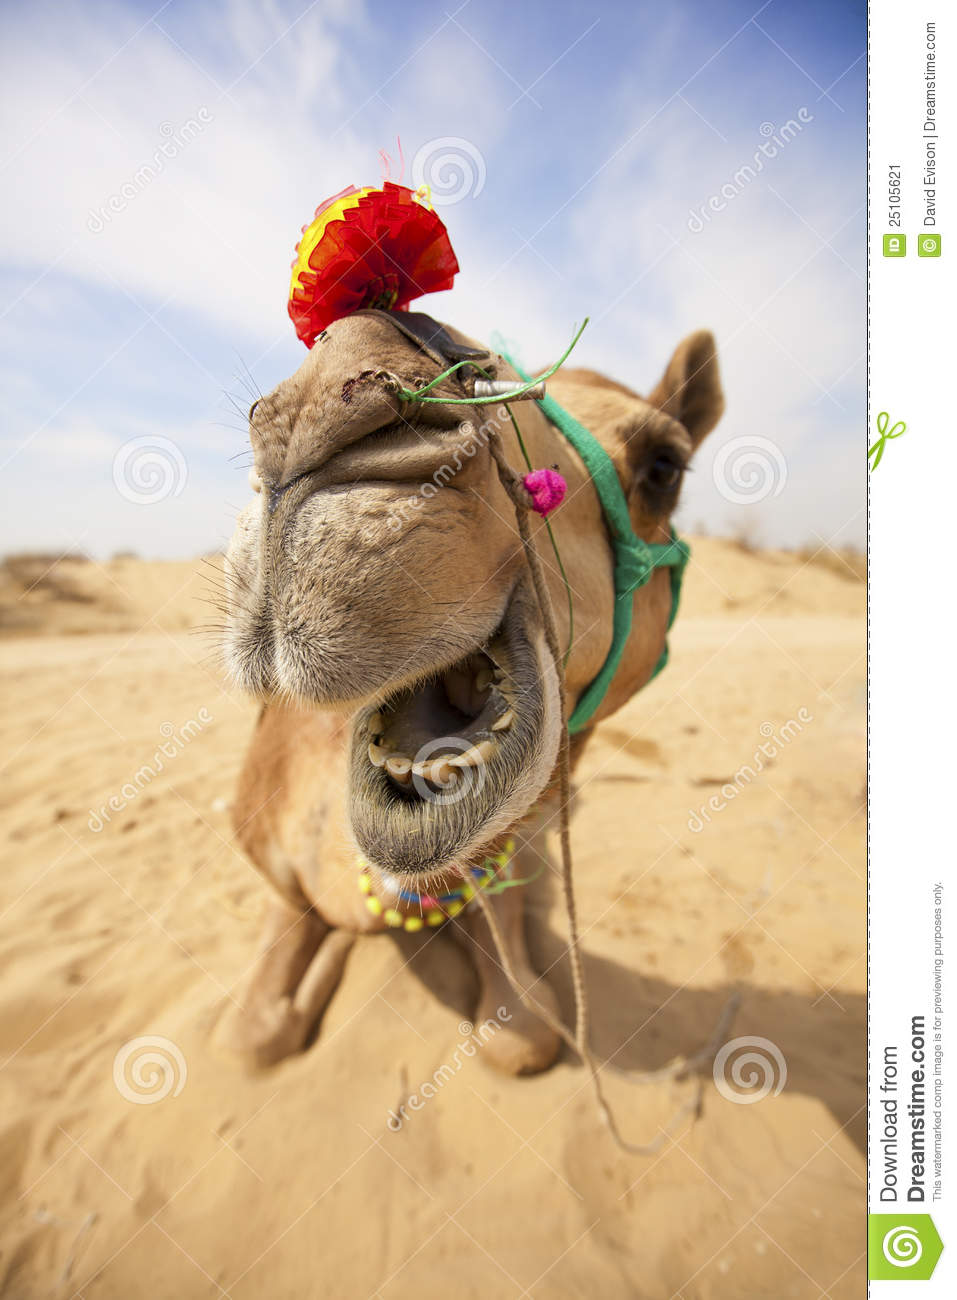 The laughing camel in the desert near Bikaner, Rajasthan, India.